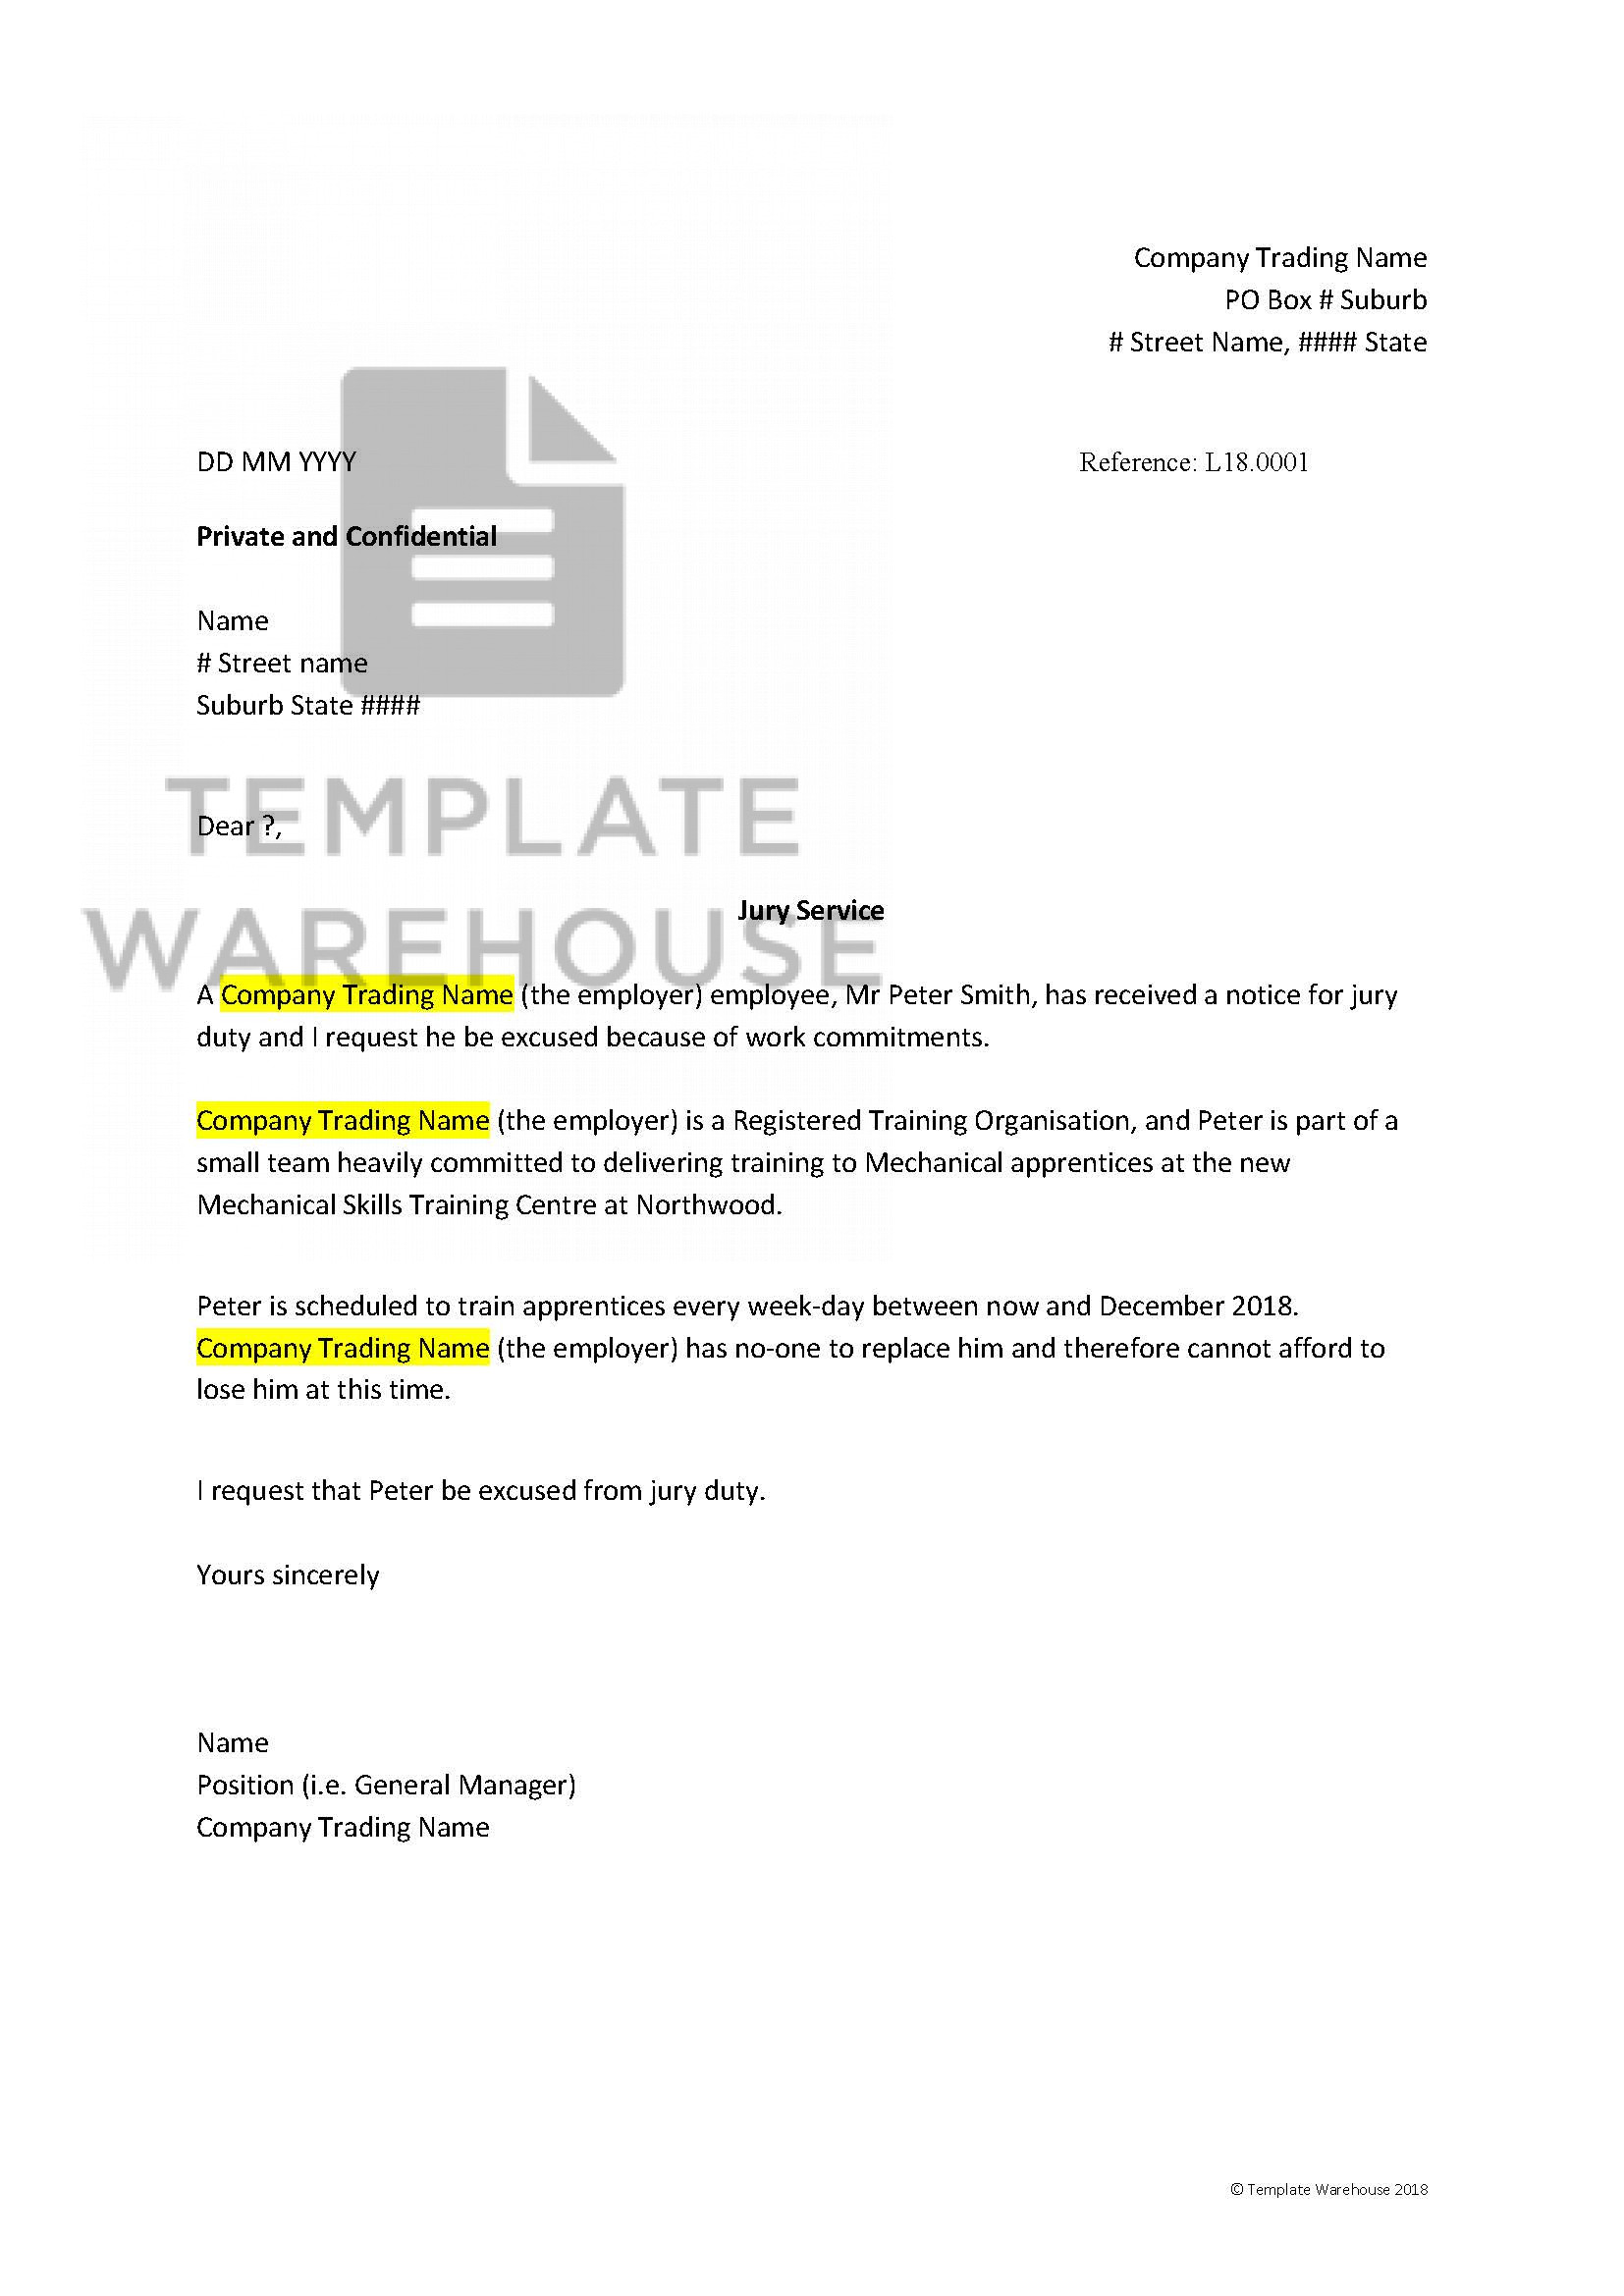 Sample Letter To Get Out Of Jury Duty From Employer from www.templatewarehouse.com.au